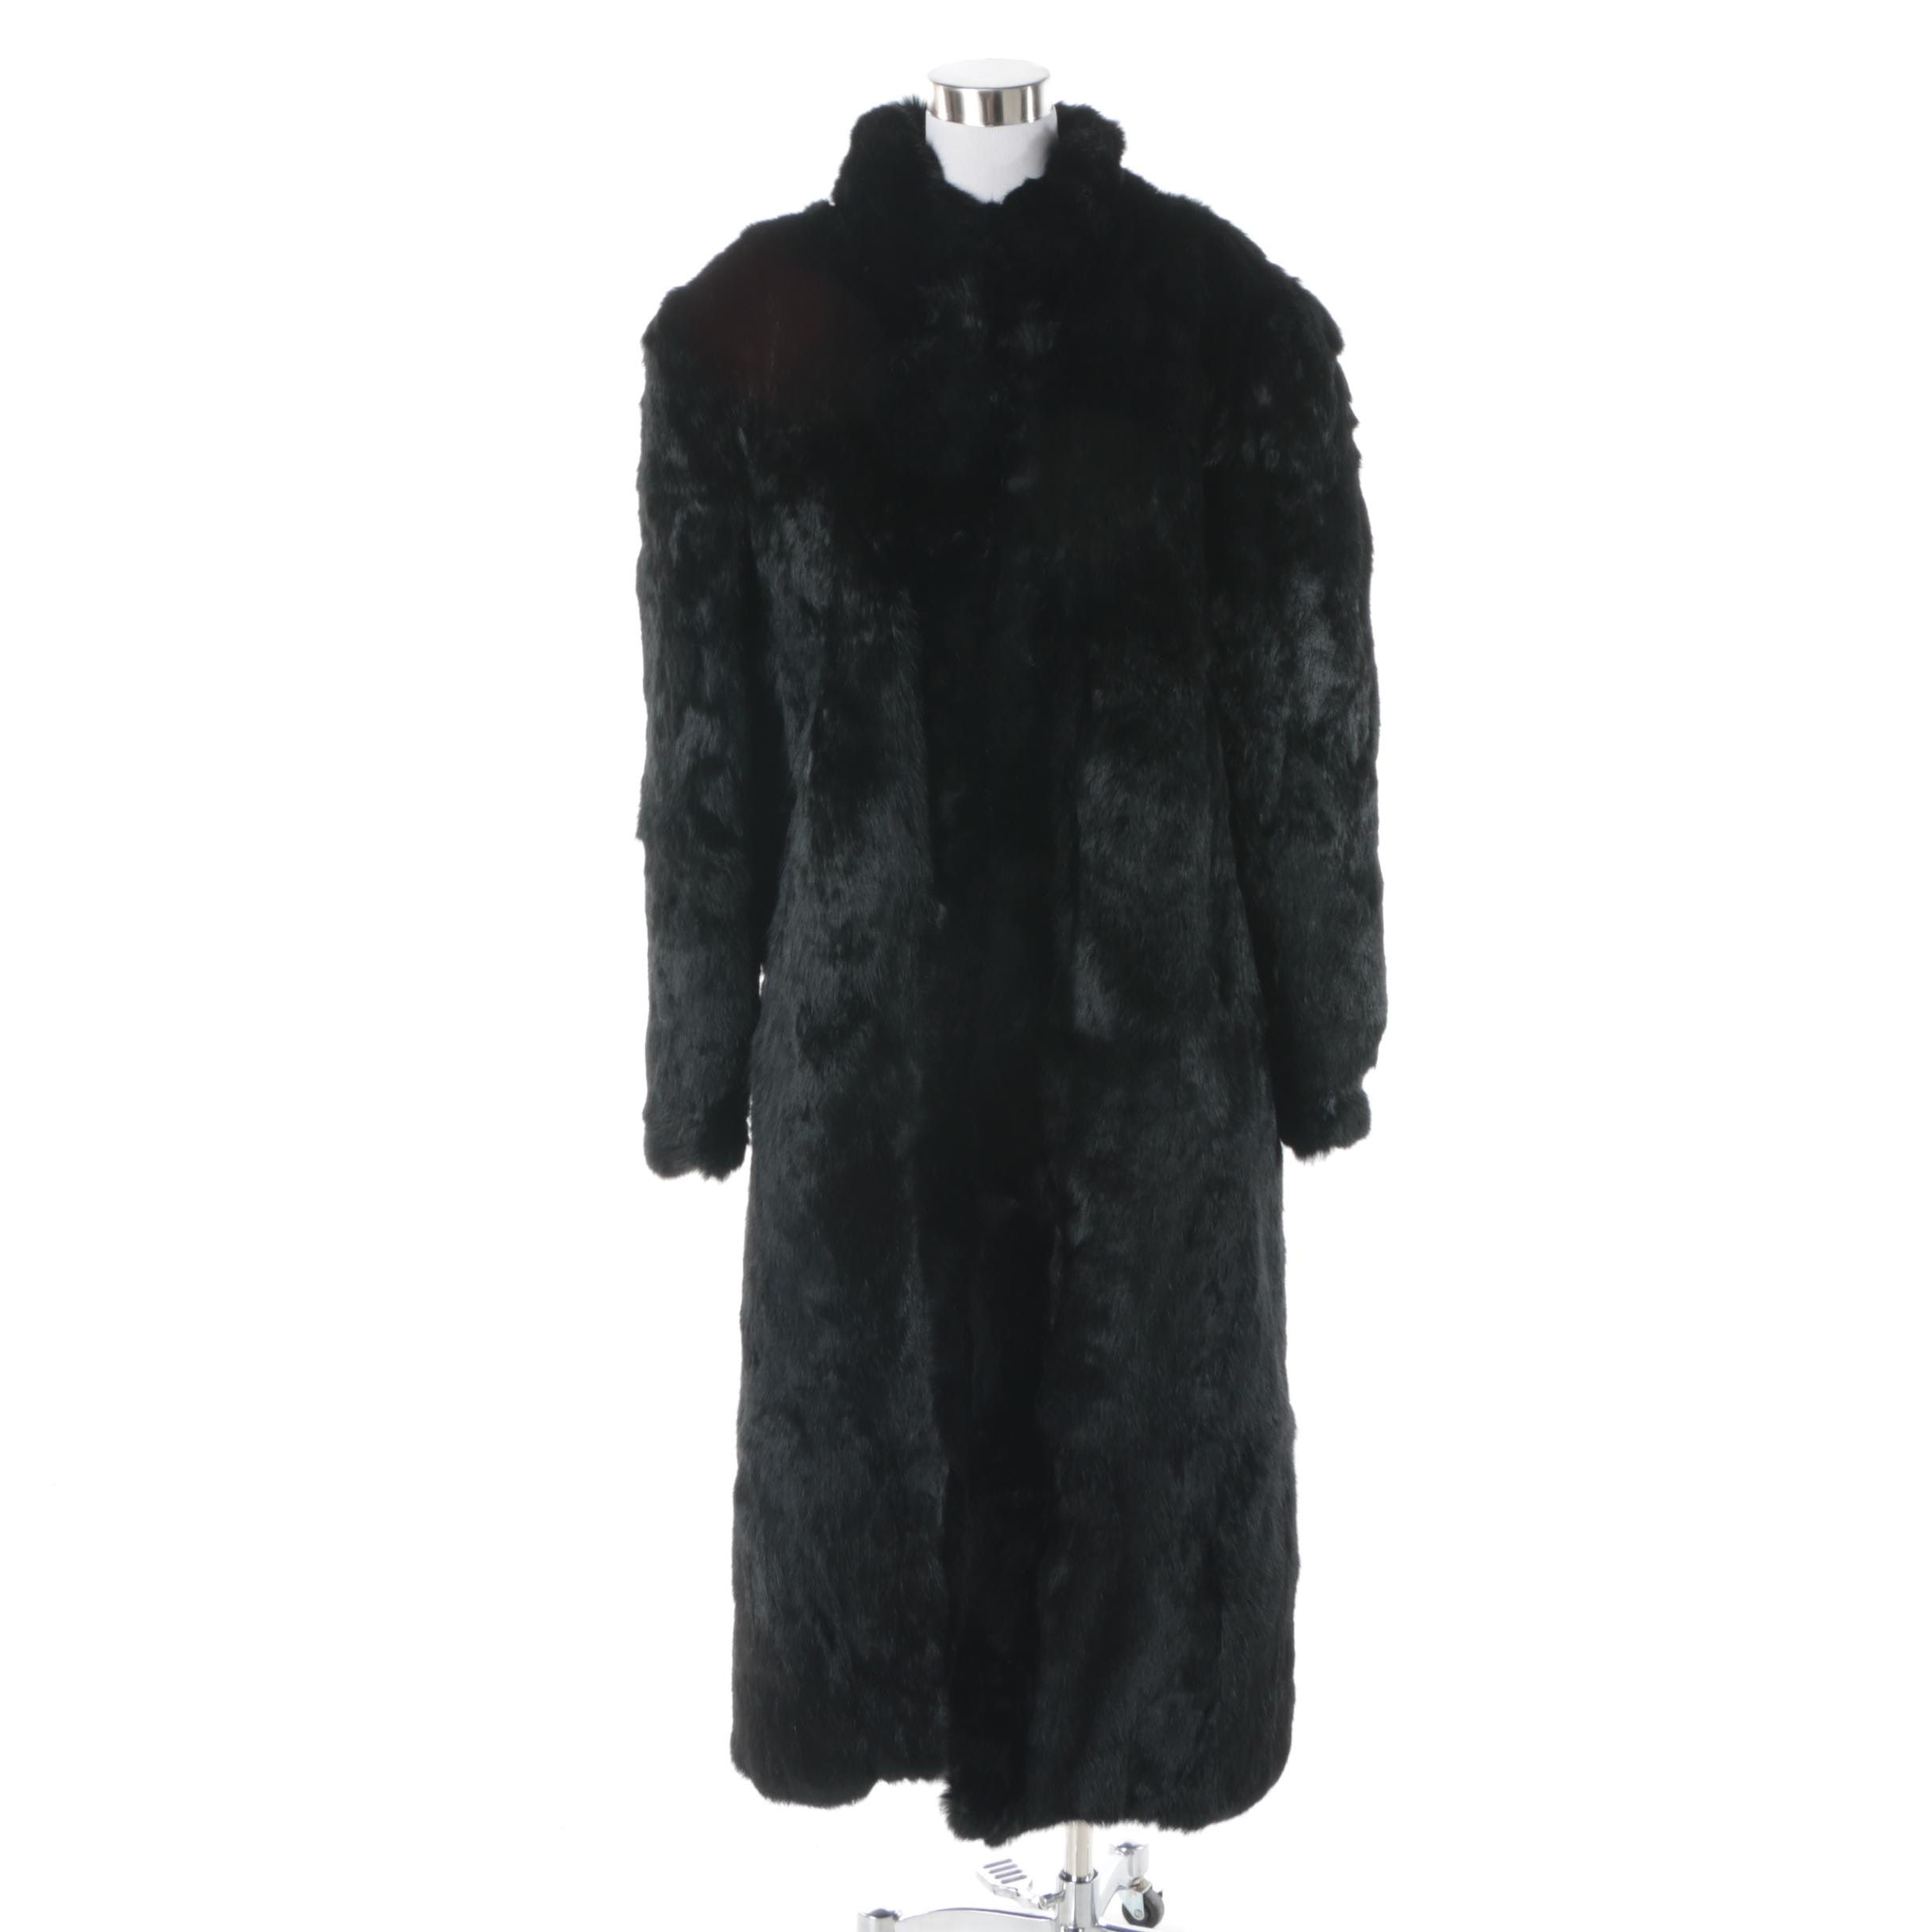 Black Rabbit Fur Mid-Length Coat Made in Hong Kong